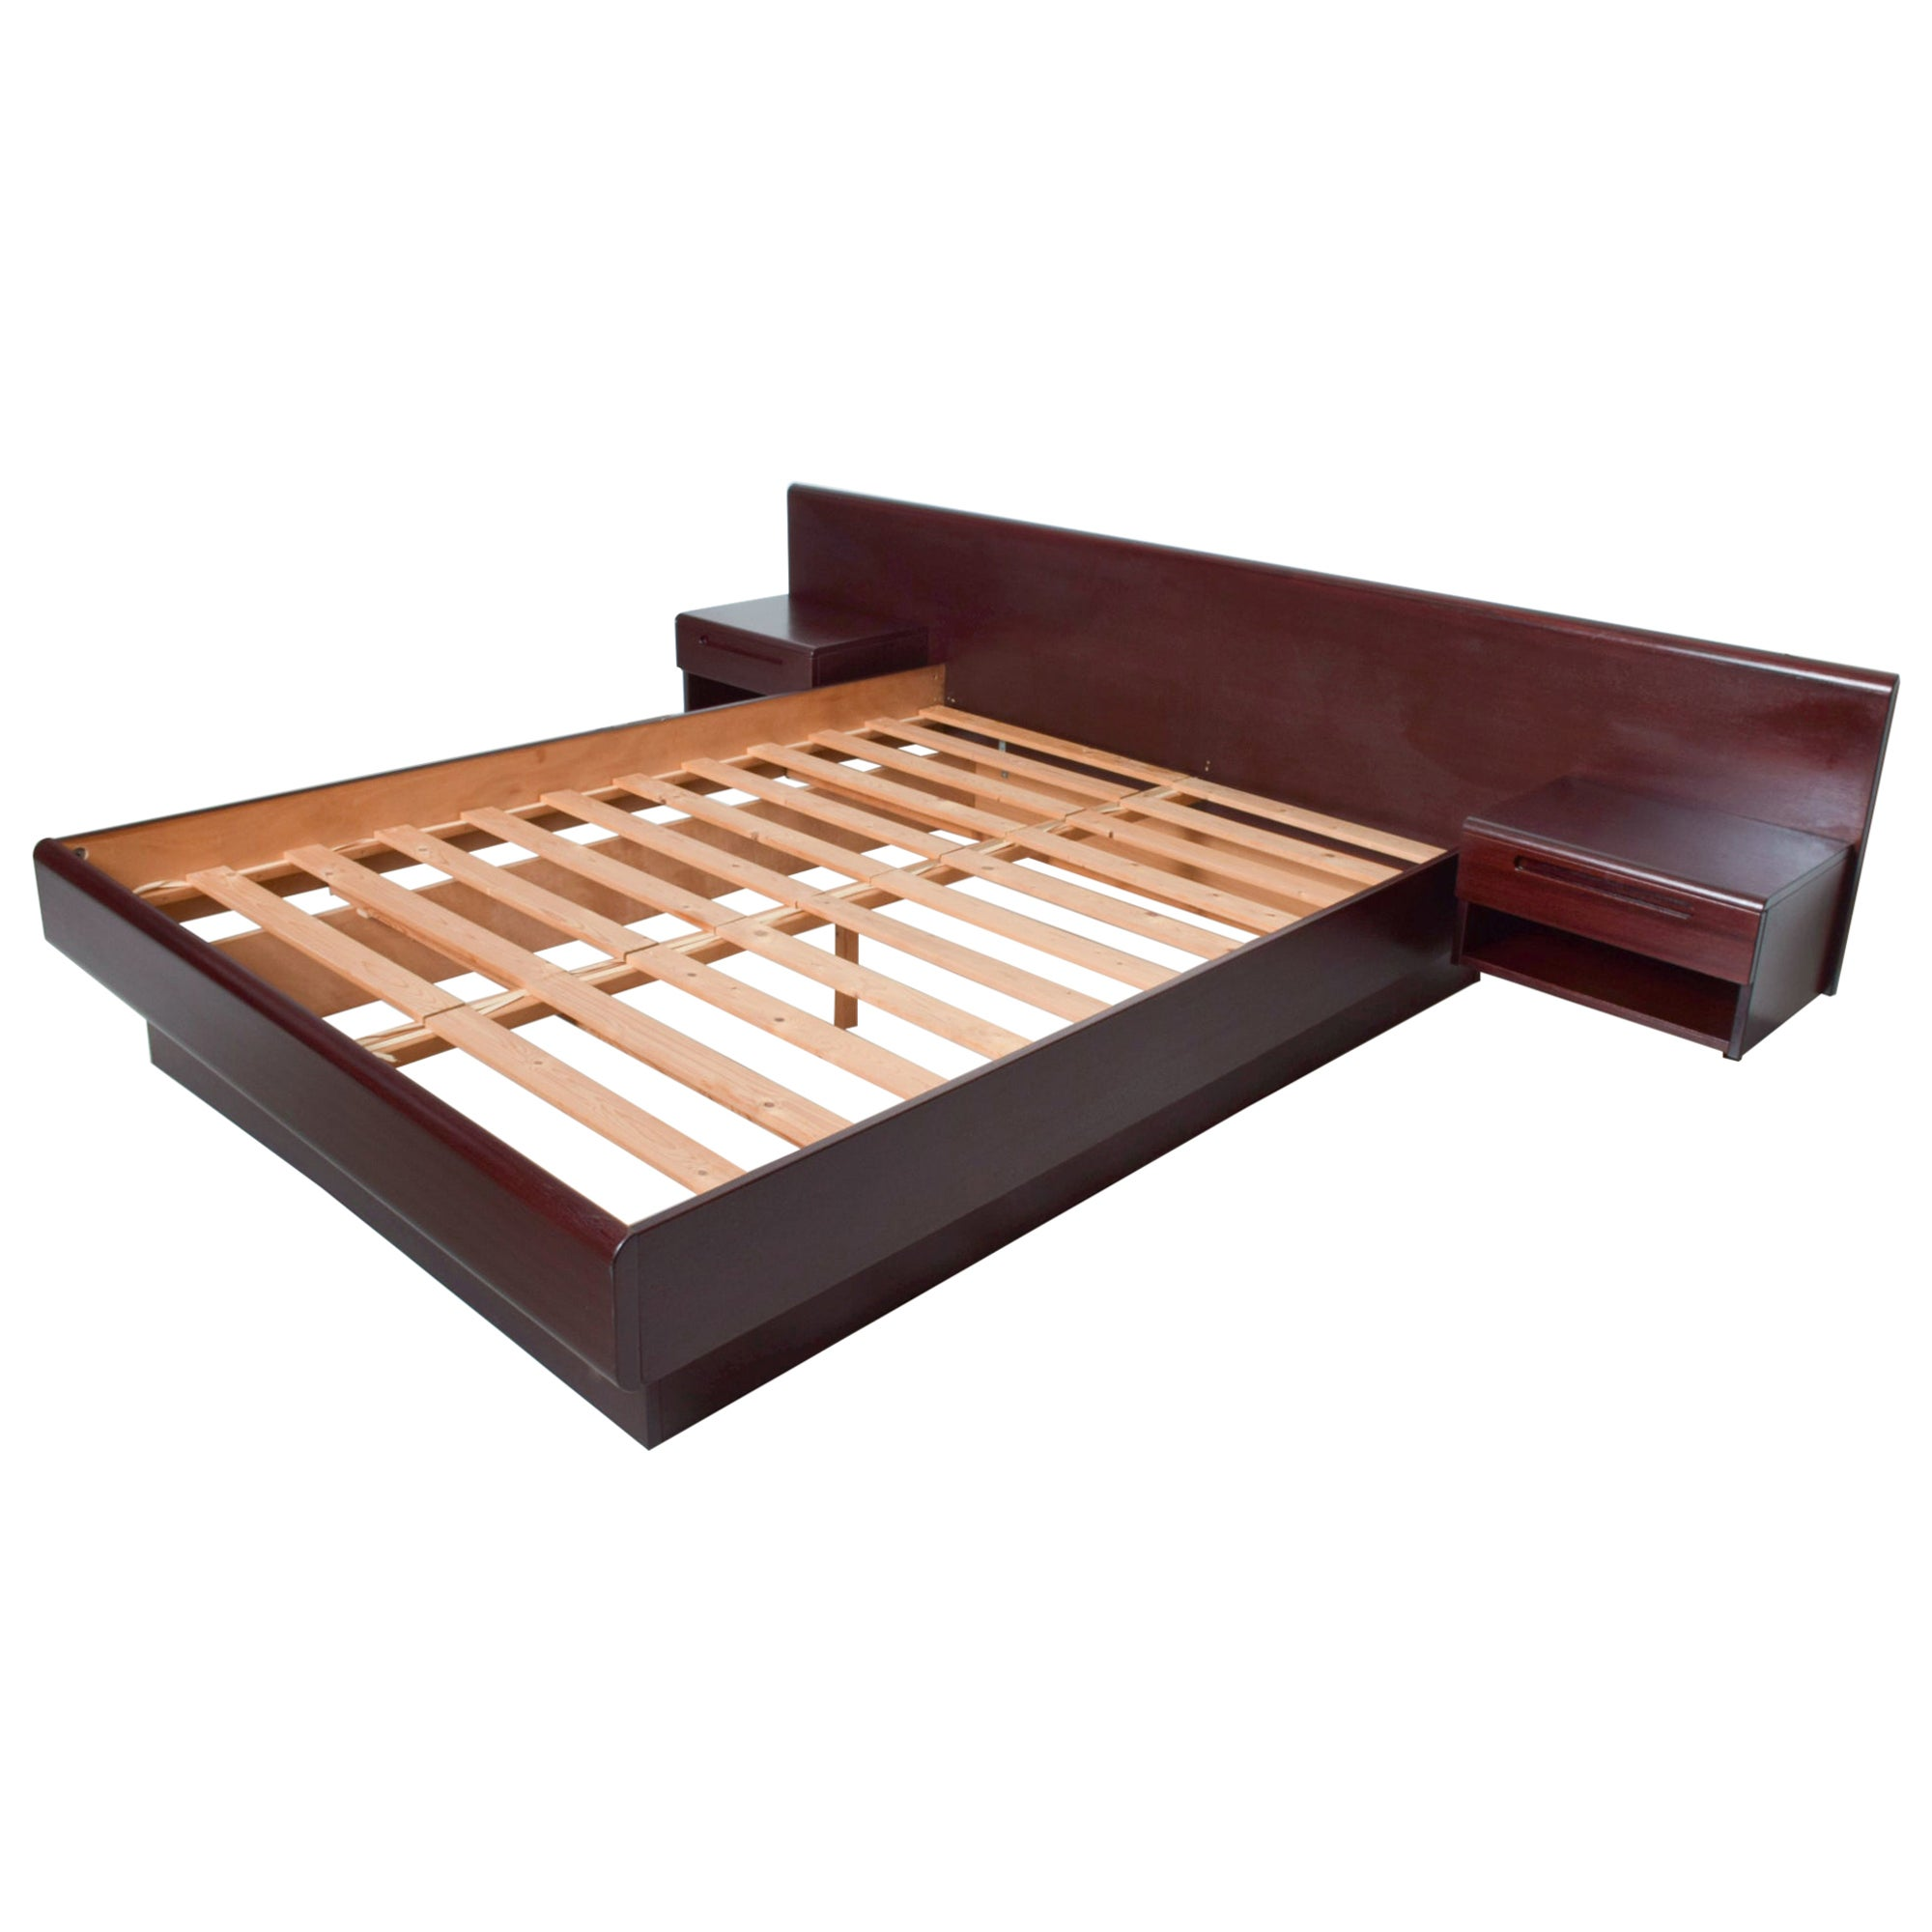 Sleek Scandinavian Modern Rosewood Platform Queen Bed with Floating Nightstands